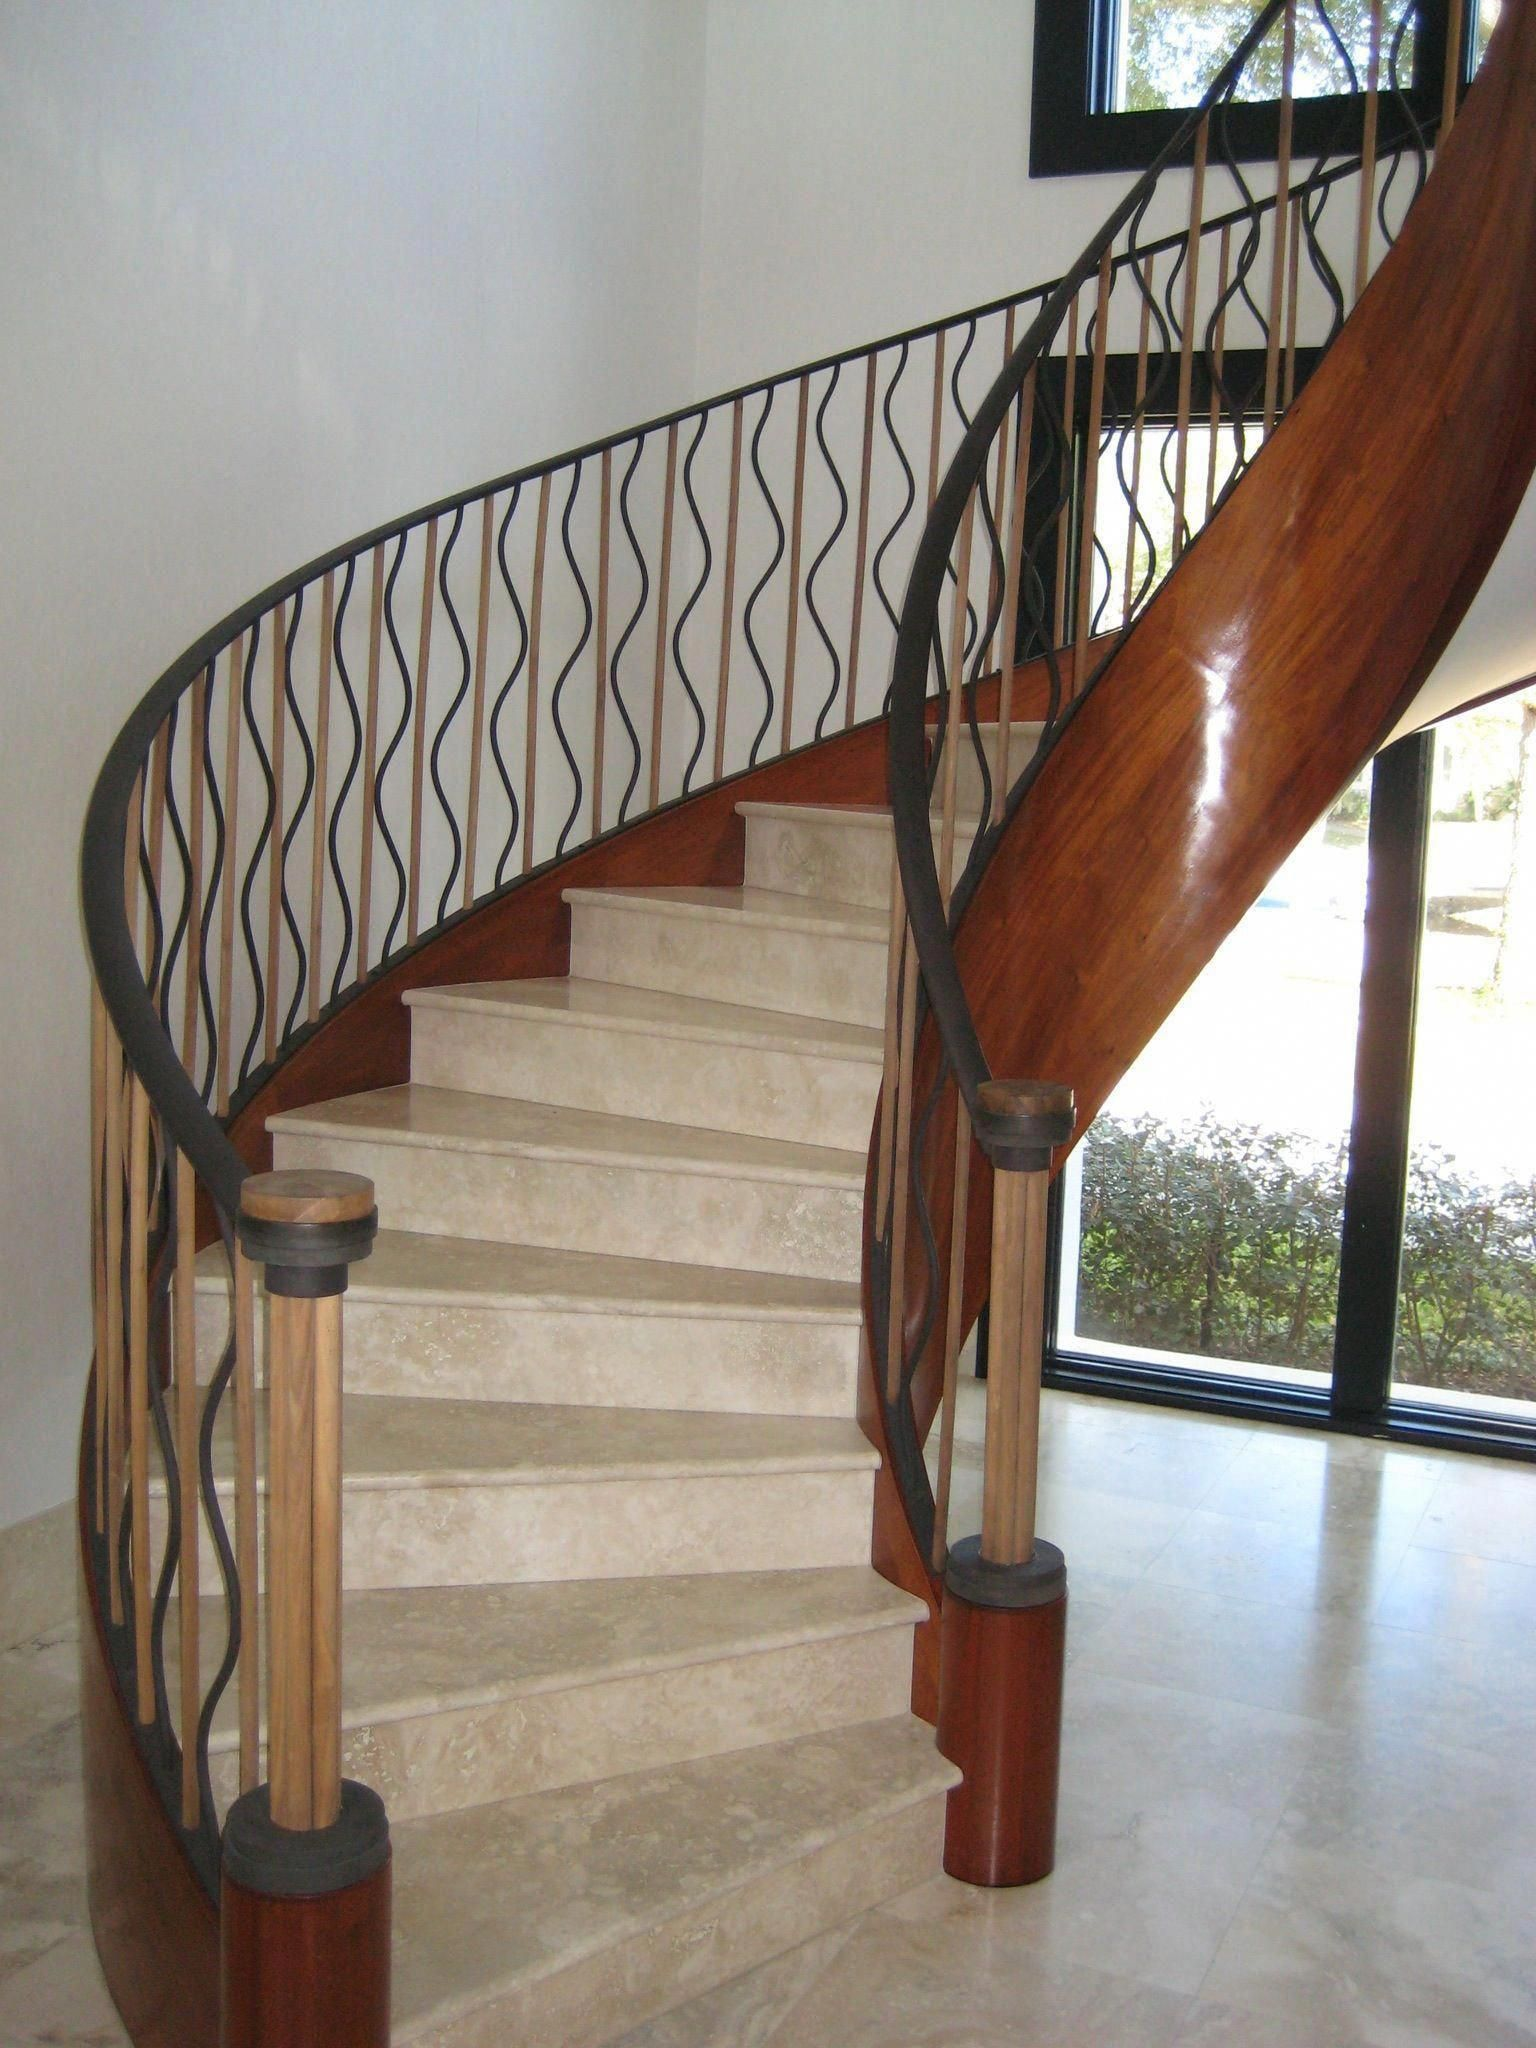 Interior Painting Cost Interiorarchitects Mazda6interior2017 In 2020 Staircase Design Wrought Iron Staircase Stairs Design